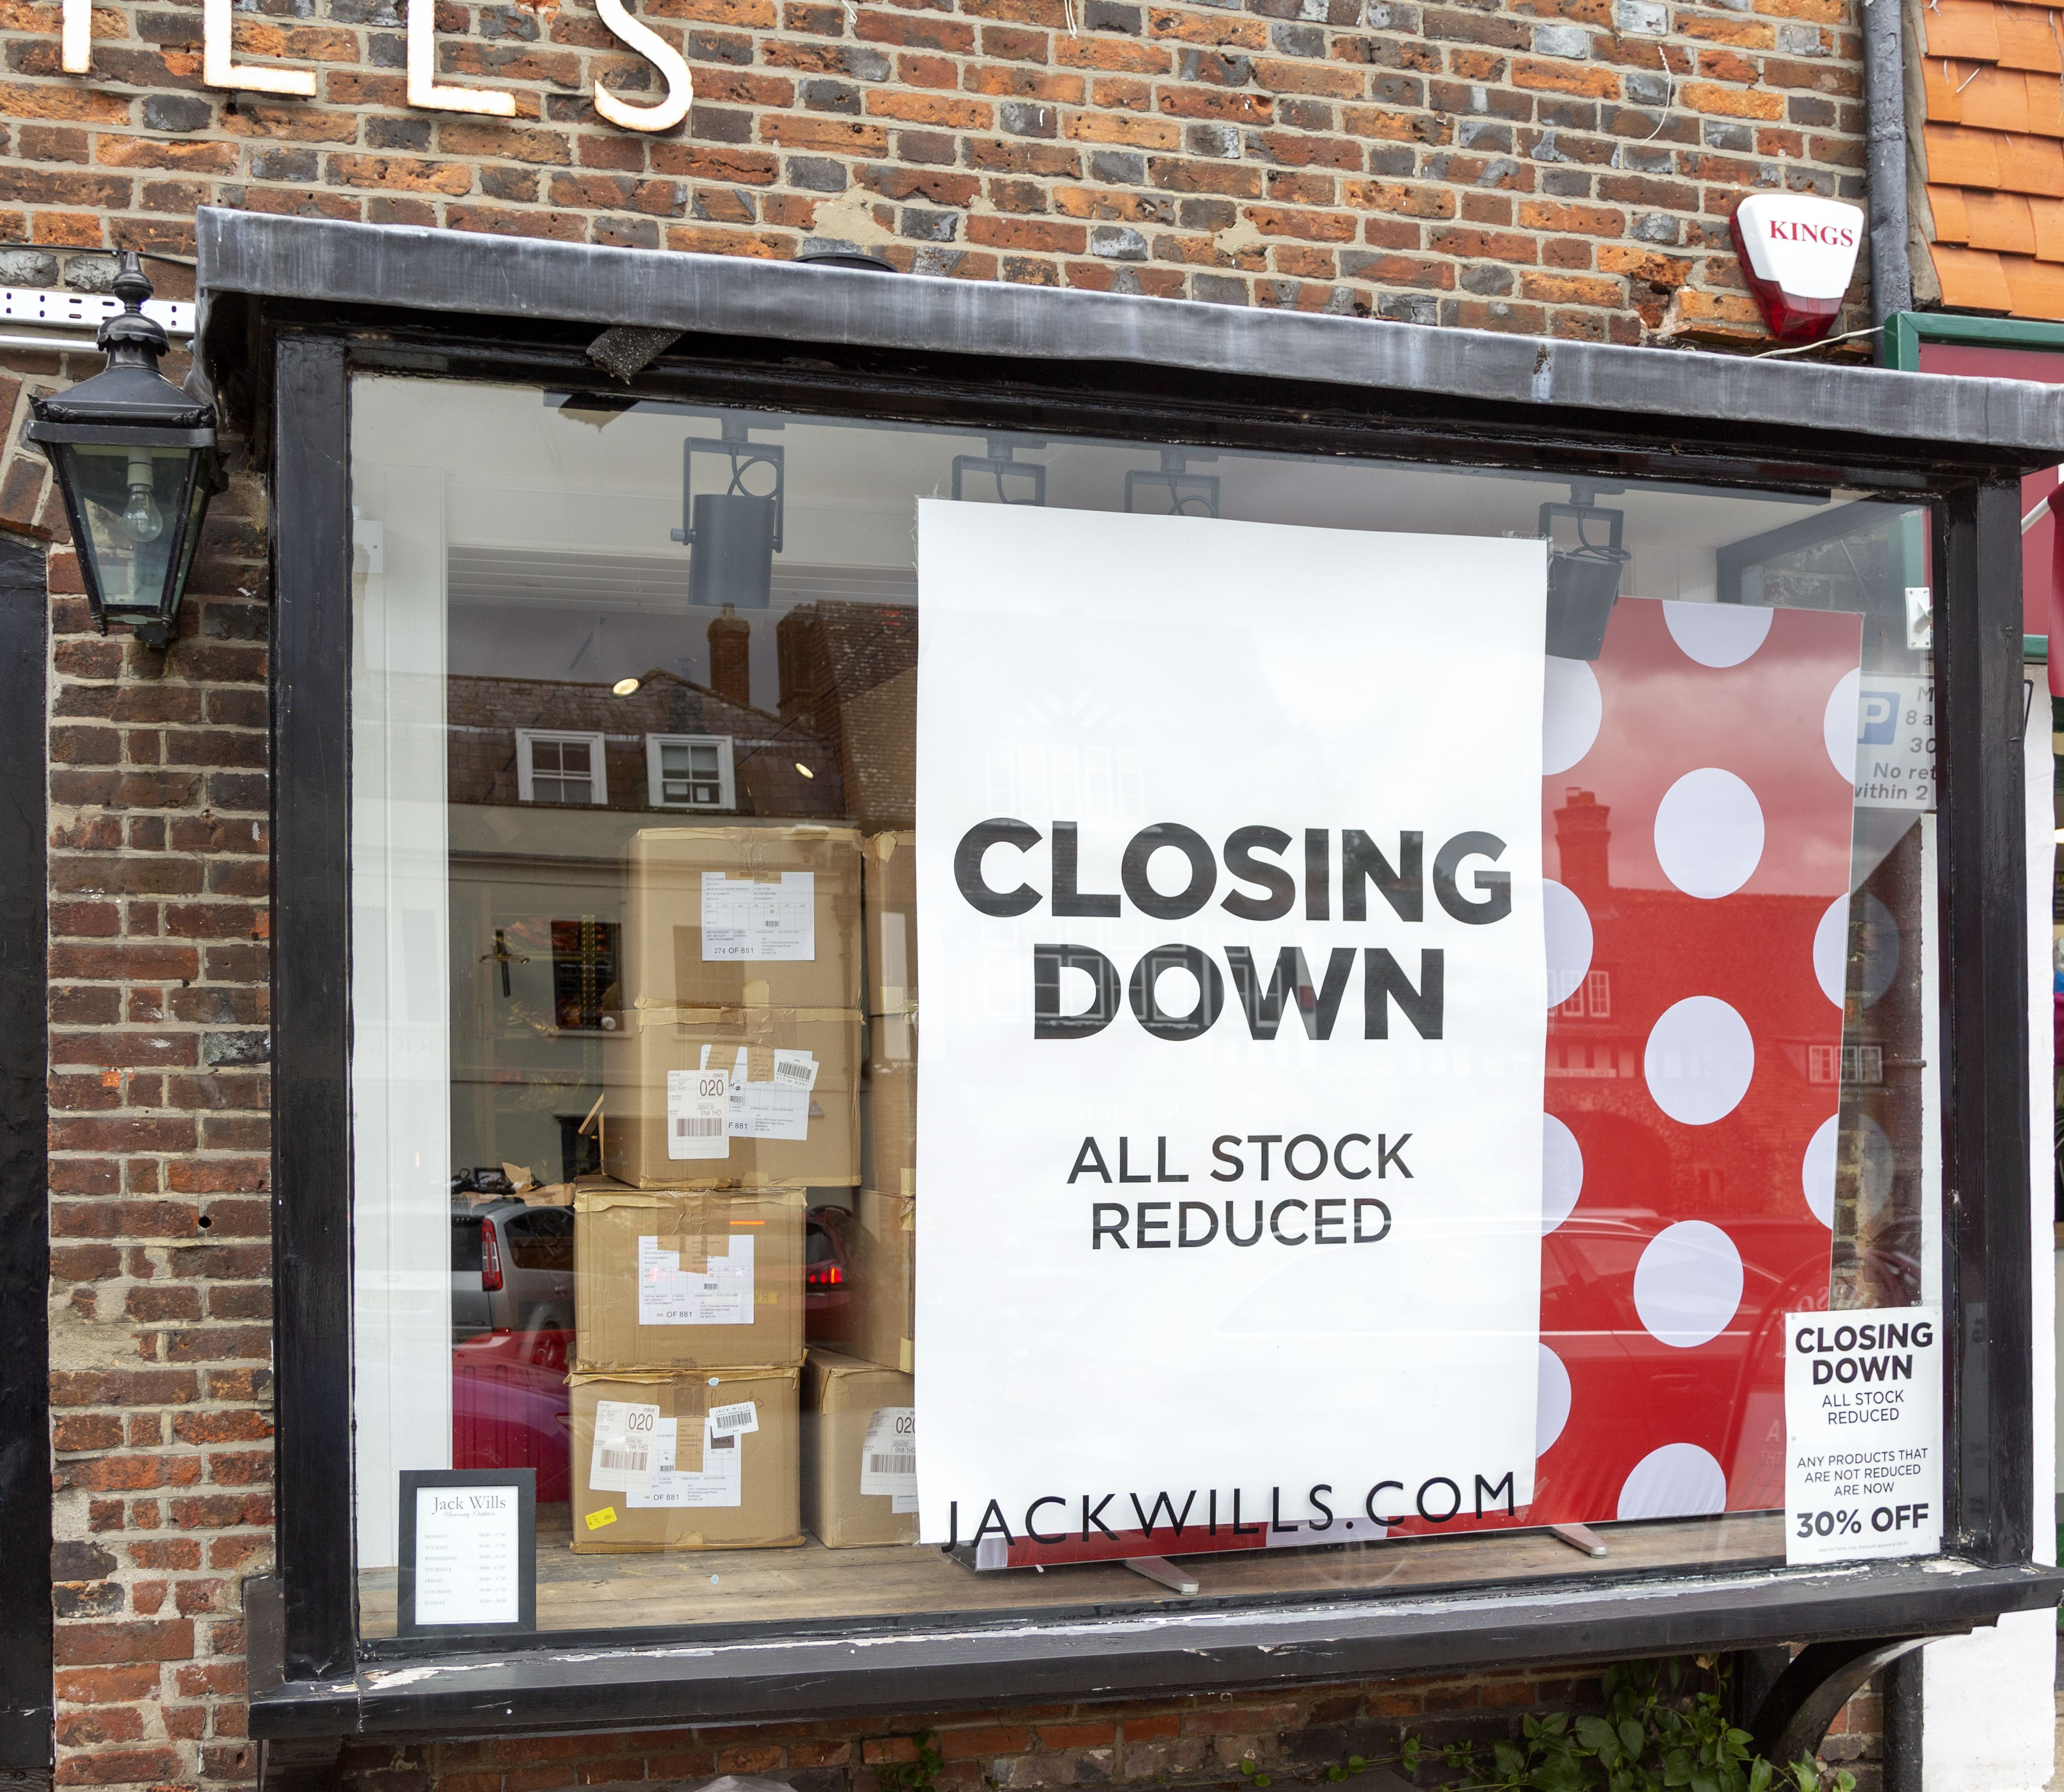 Closing down banner sign shop window, Jack Wills store, Marlborough, Wiltshire, England, UK. (Photo by: Geography Photos/Universal Images Group via Getty Images)